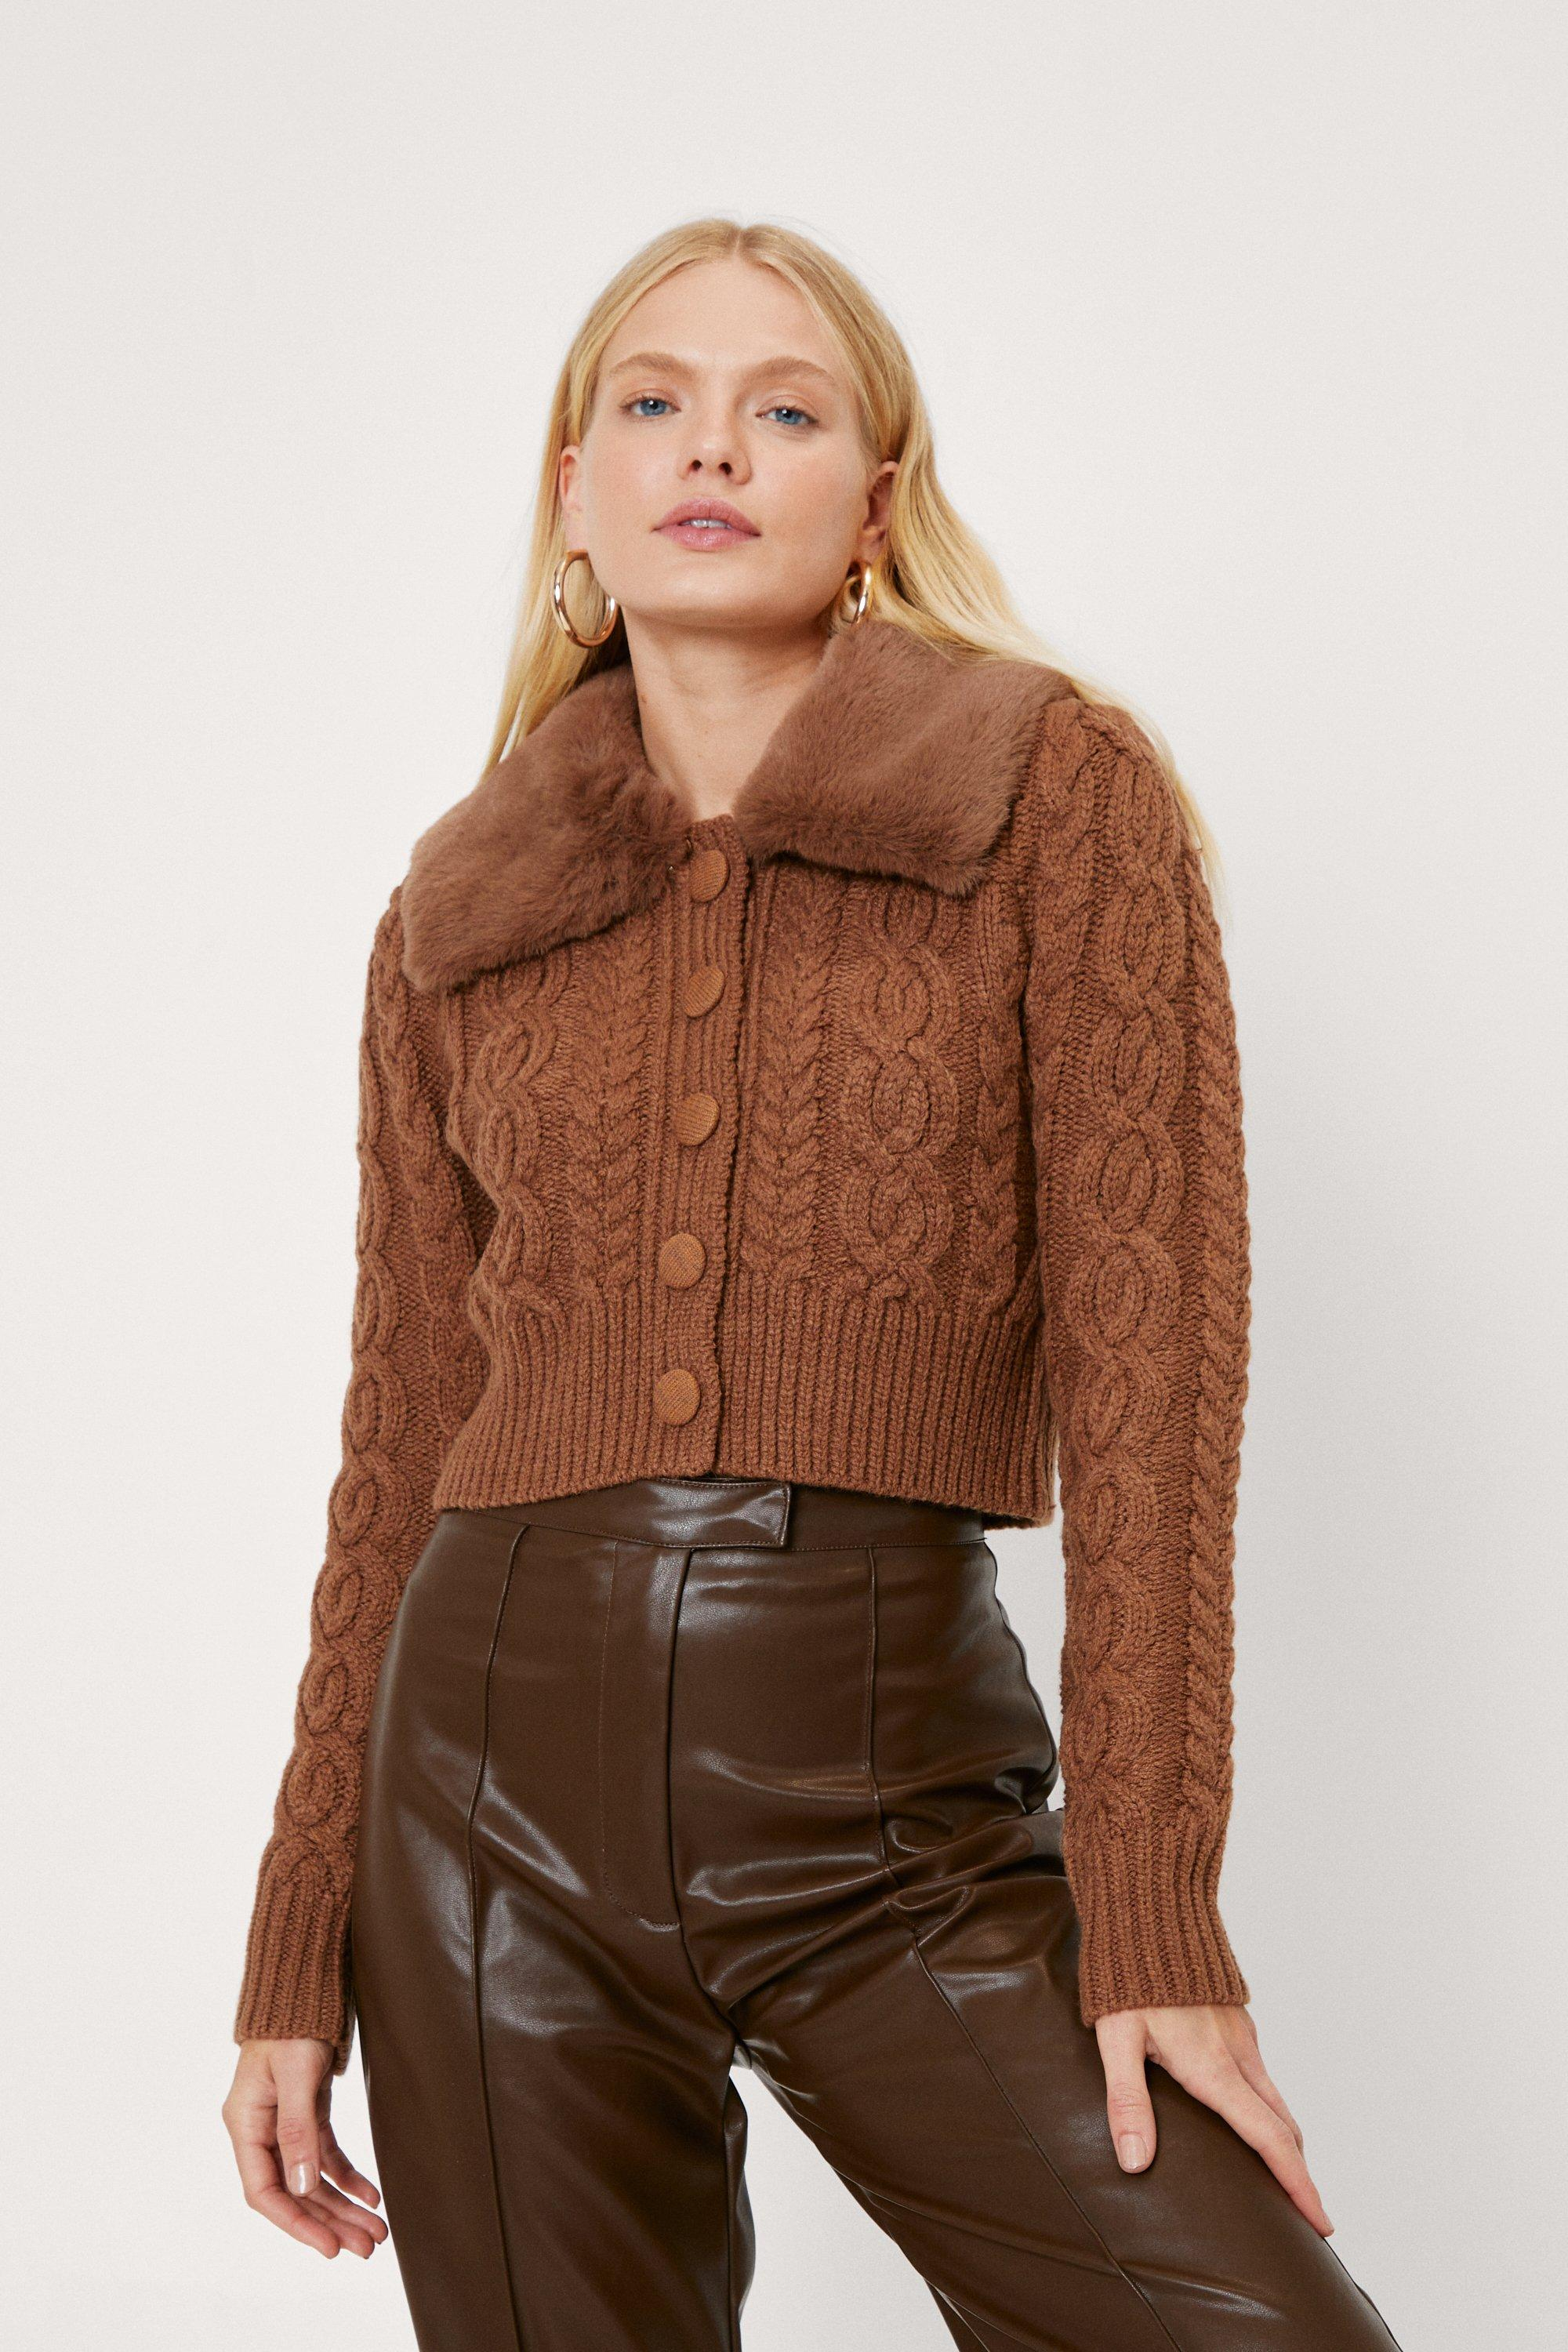 Vintage Sweaters, Retro Sweaters & Cardigan Womens Faux Fur Cable Knit Button Cardigan - Chocolate - M $27.20 AT vintagedancer.com